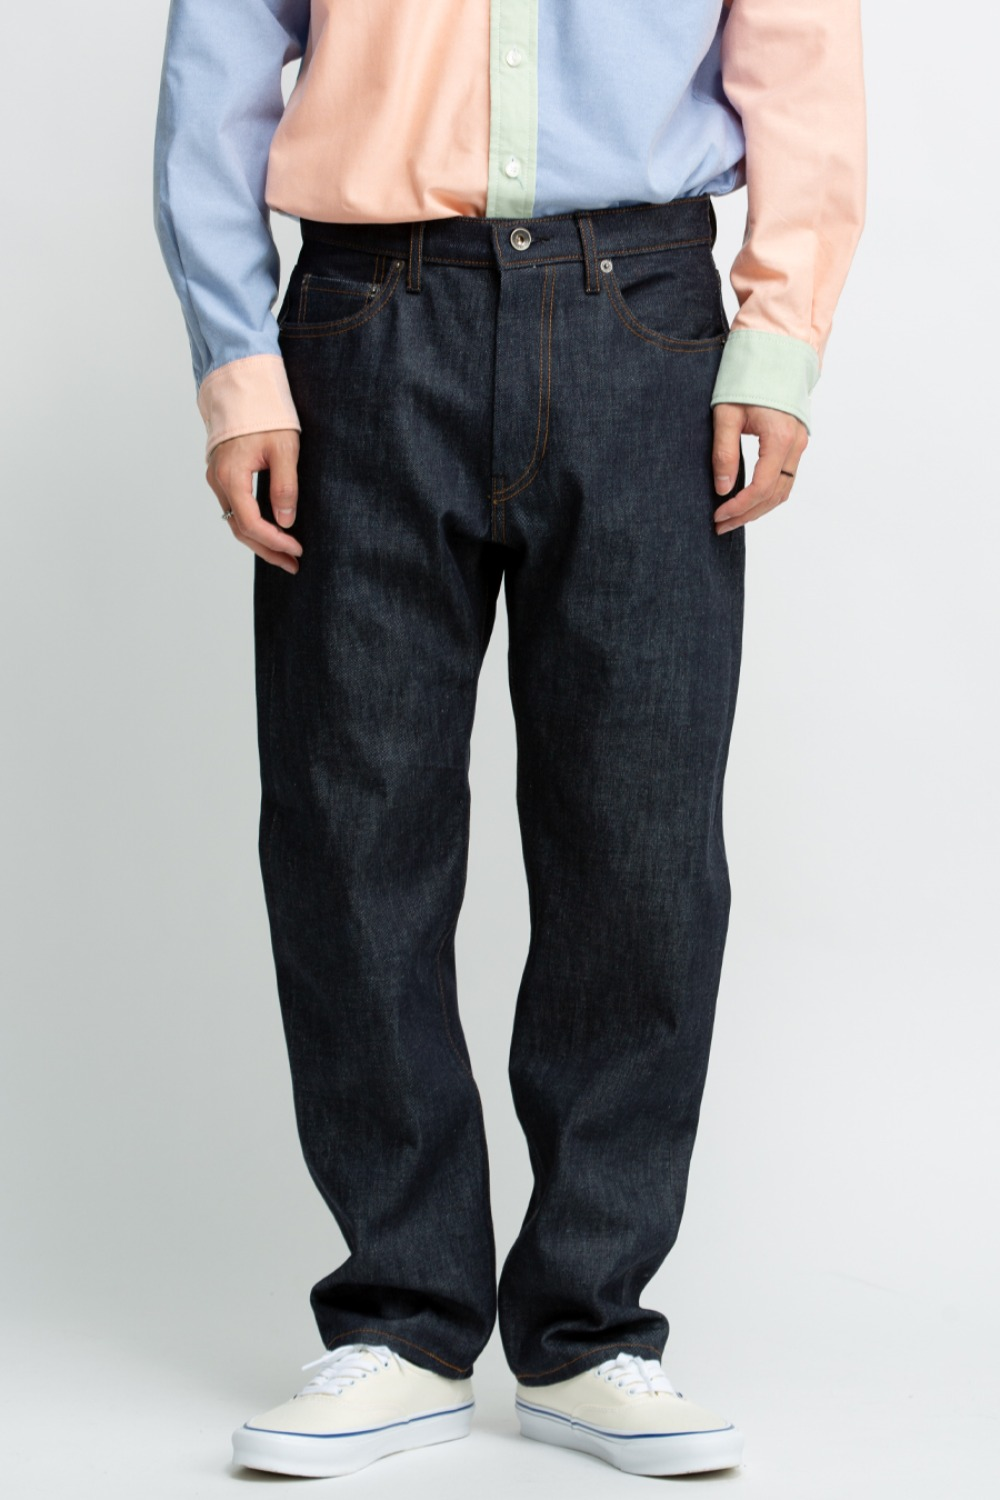 TYPE 5 JEANS INDIGO 13OZ CONE DENIM